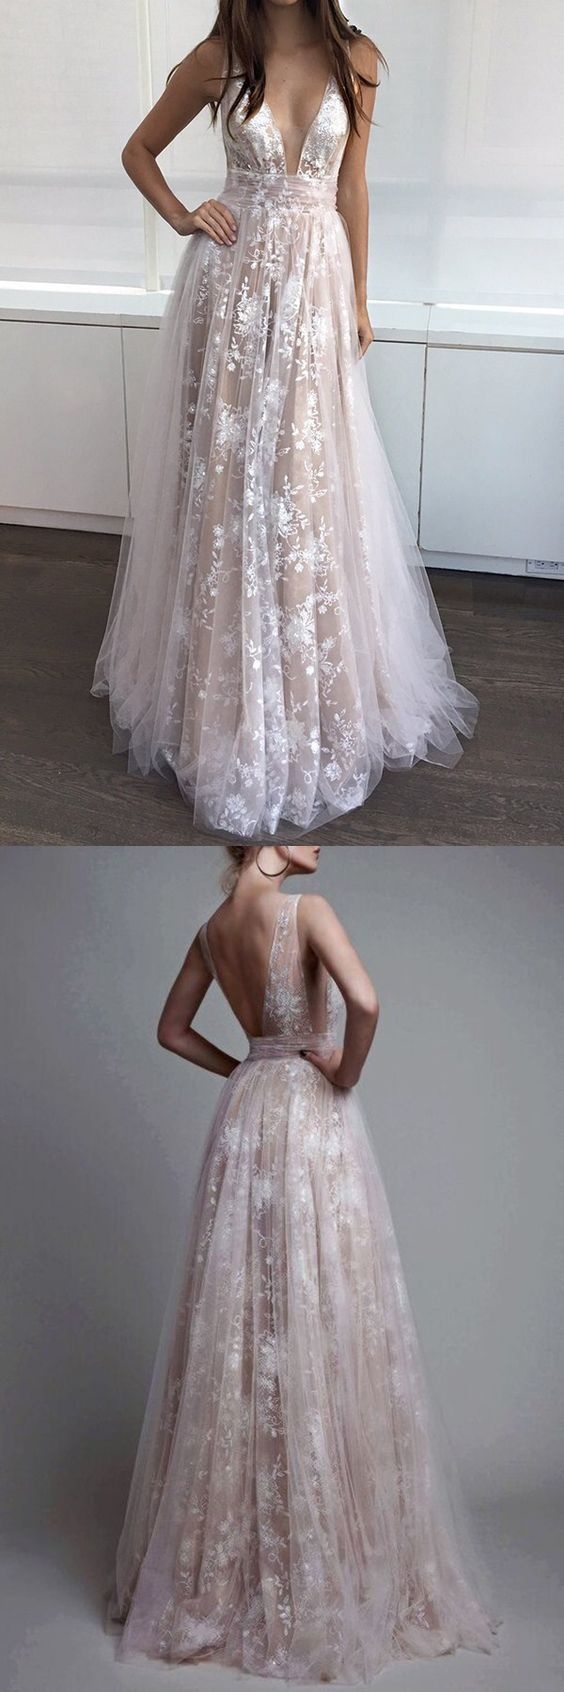 2017 Long Sexy Deep V-Neck Tulle Lace Appliques Floor-Length A-Line Party Prom Dress --PD0281